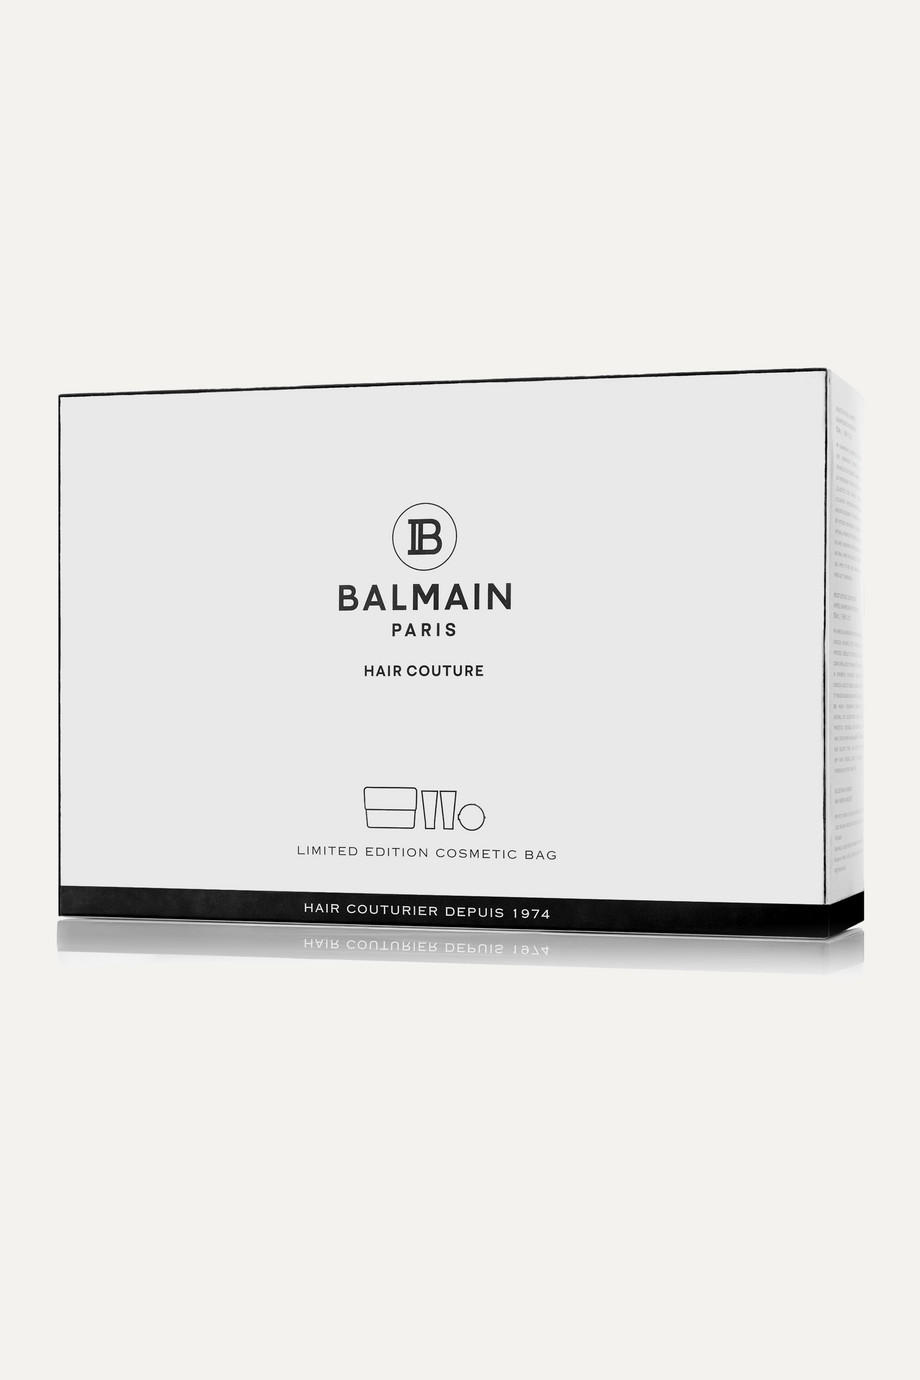 BALMAIN PARIS HAIR COUTURE Moisturizing Haircare Travel Kit